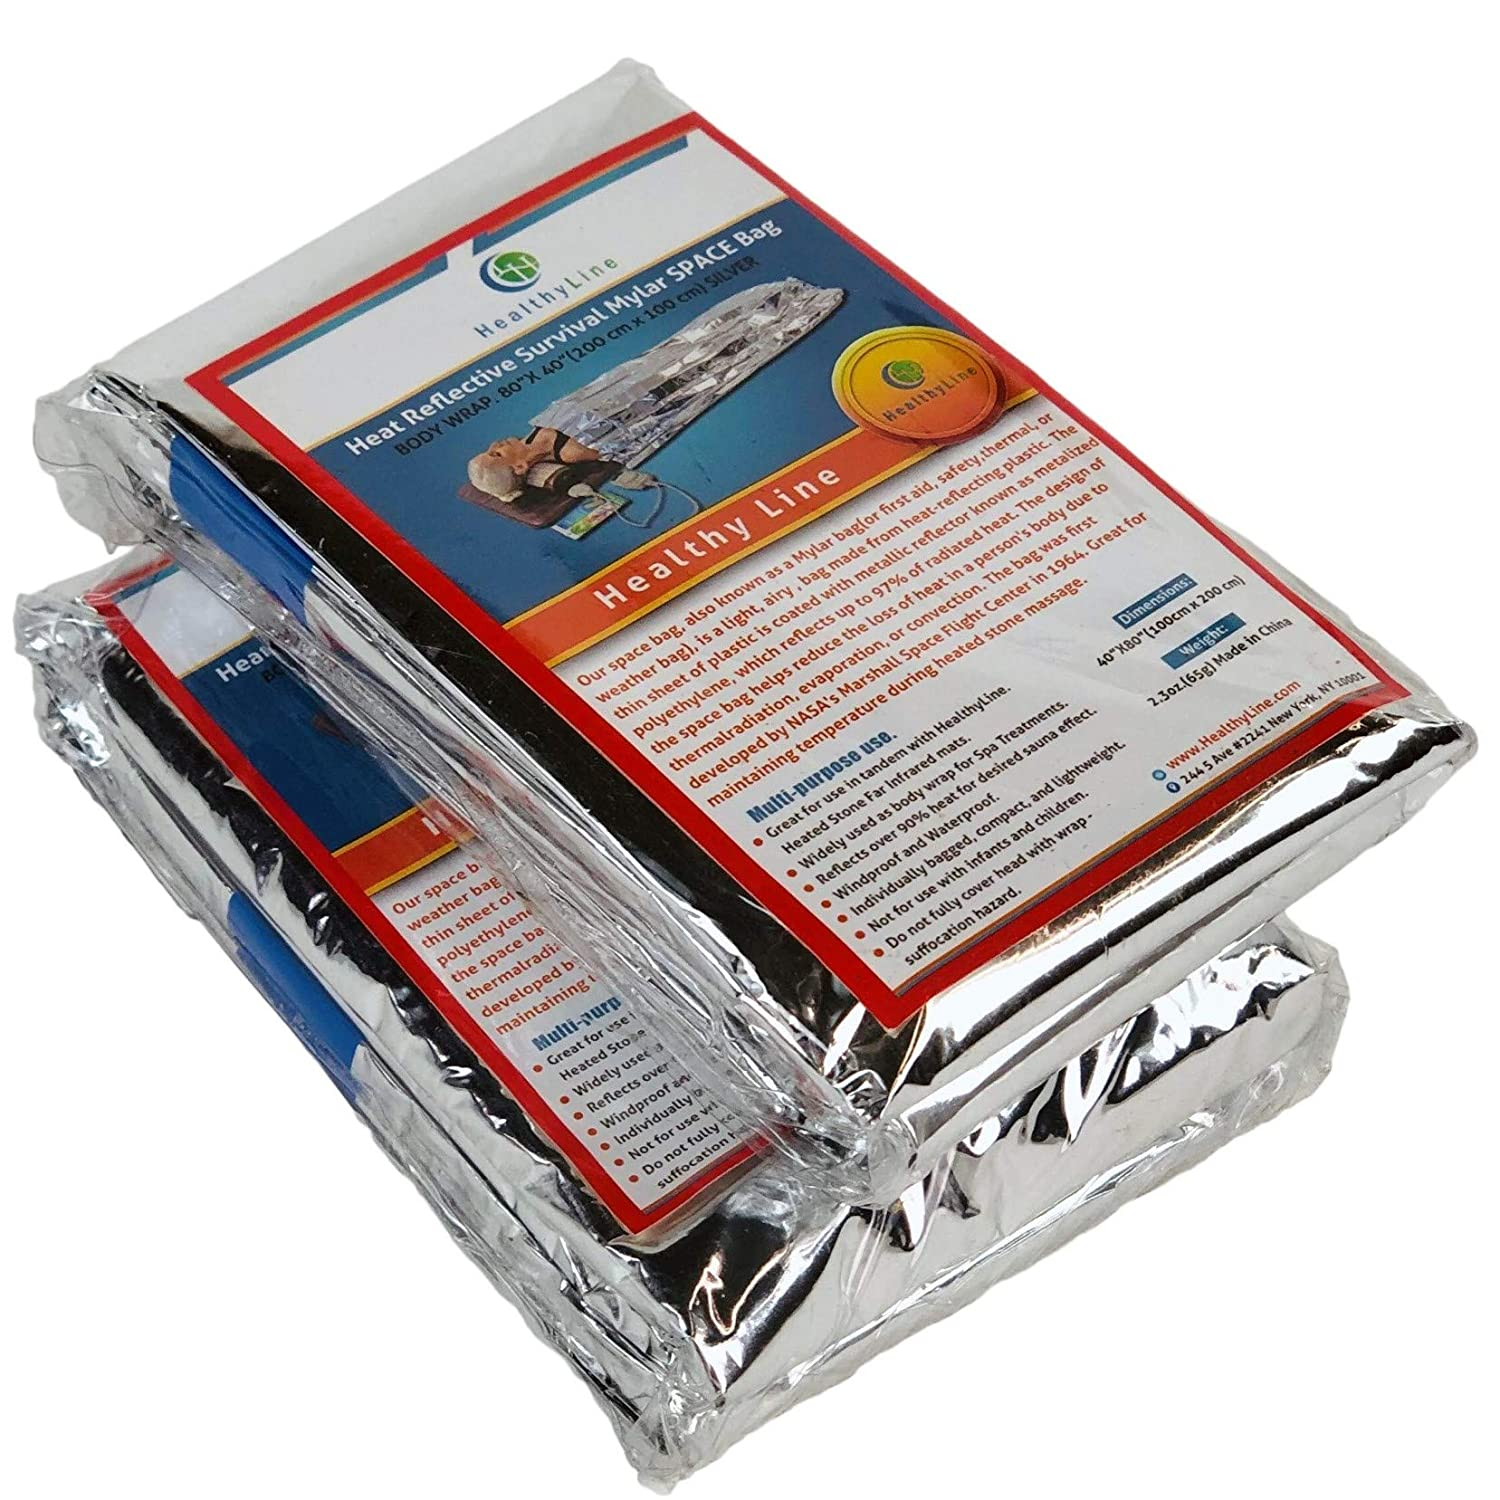 HealthyLine - Emergency Mylar Thermal Space Sleeping Bags (2 Pack) - for Detox & Weight Loss Sauna Experience, Far Infrared Therapy - Retains up to 97% of Body Heat - Silver 80in x 40in